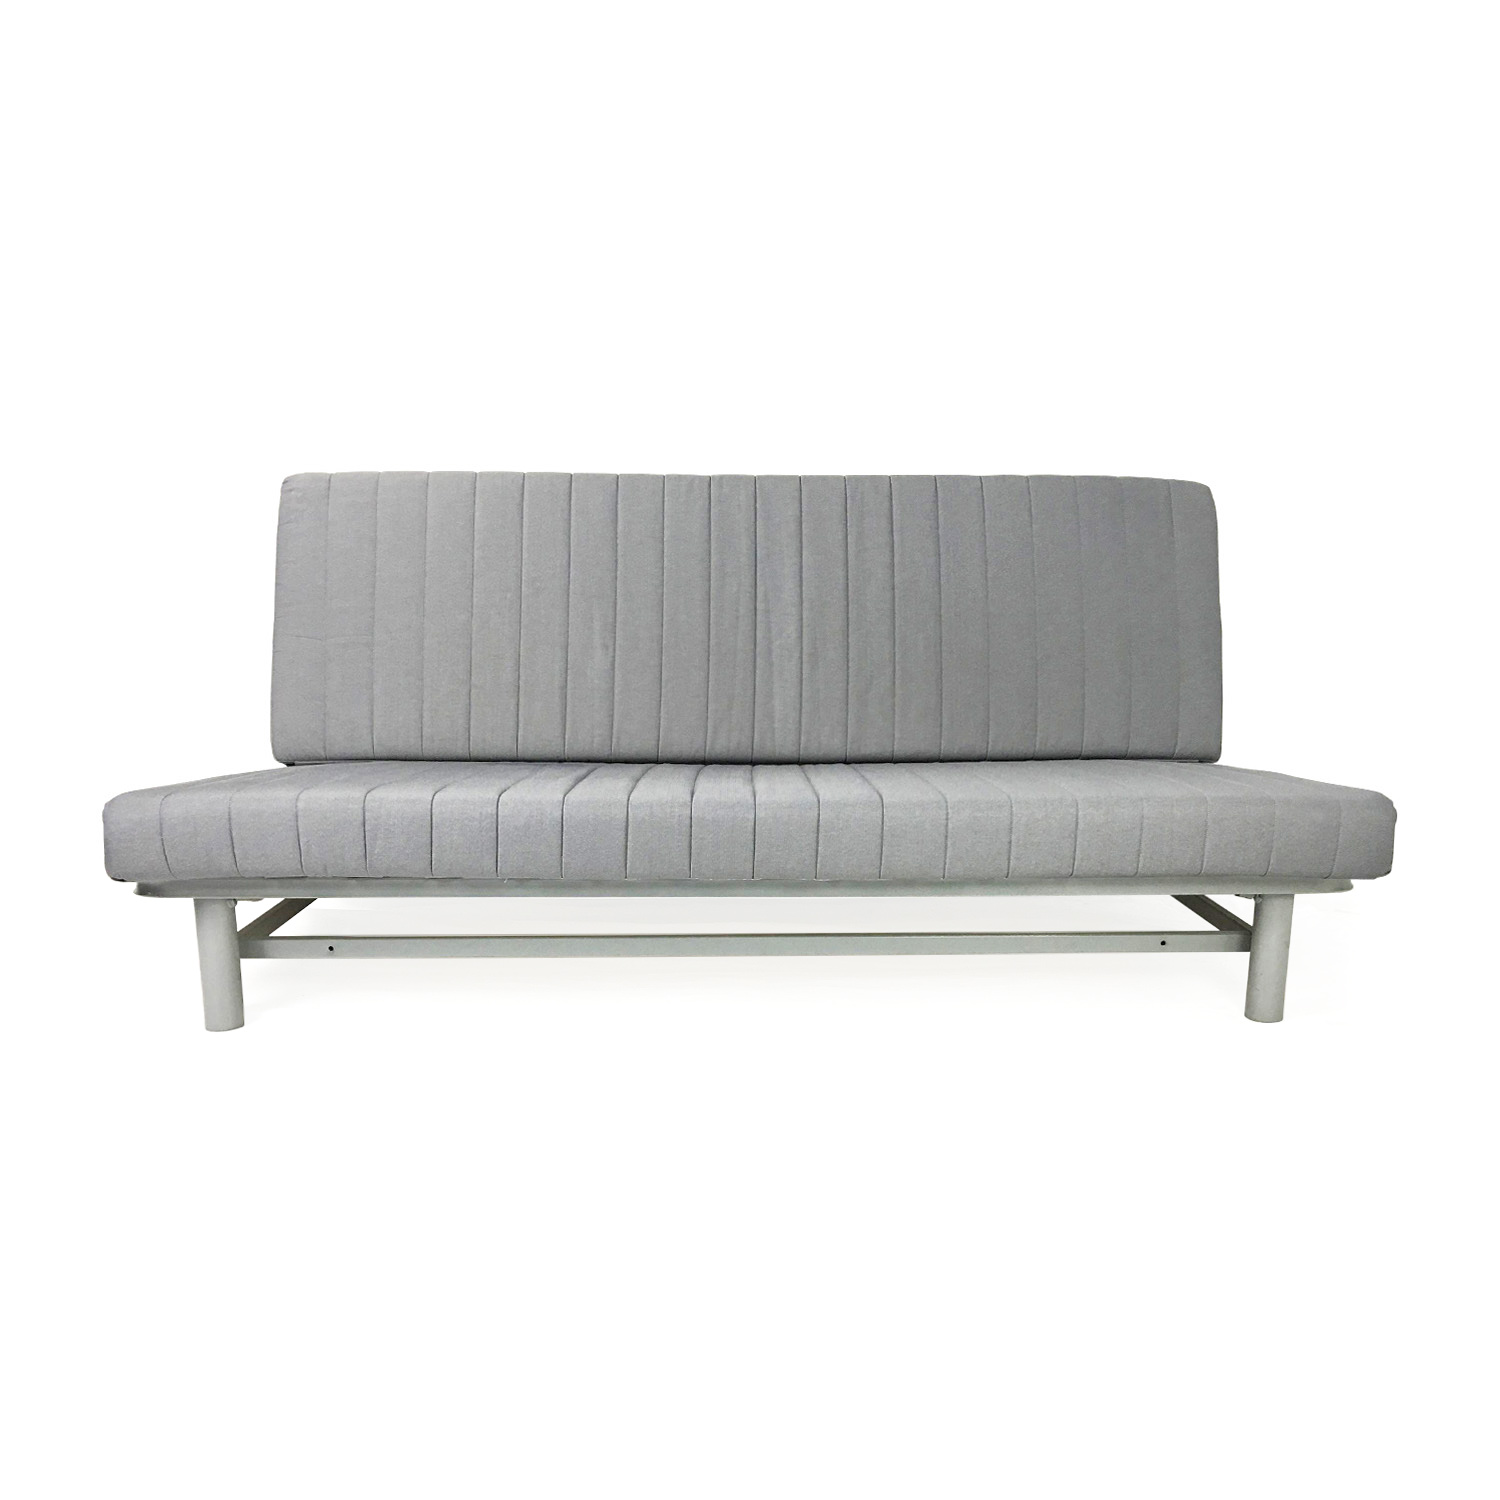 grey sofa ikea maison douce 99 light gray sofa 100